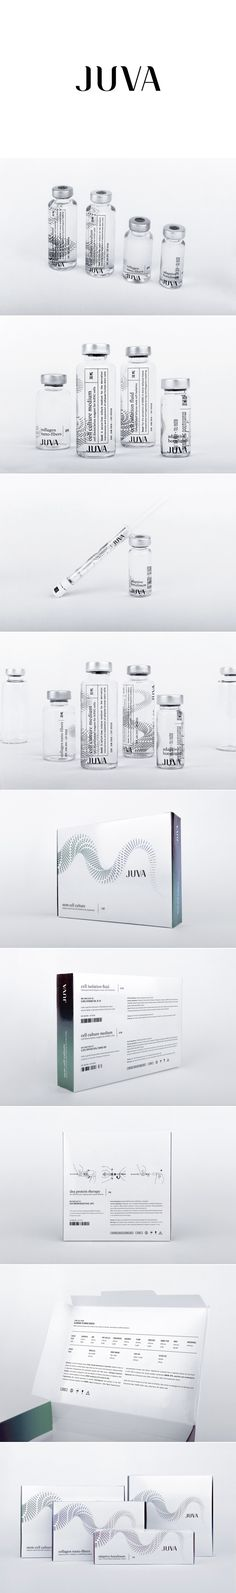 Juva. Impressive packaging design for a pharmaceutical brand. #Packaging #Design